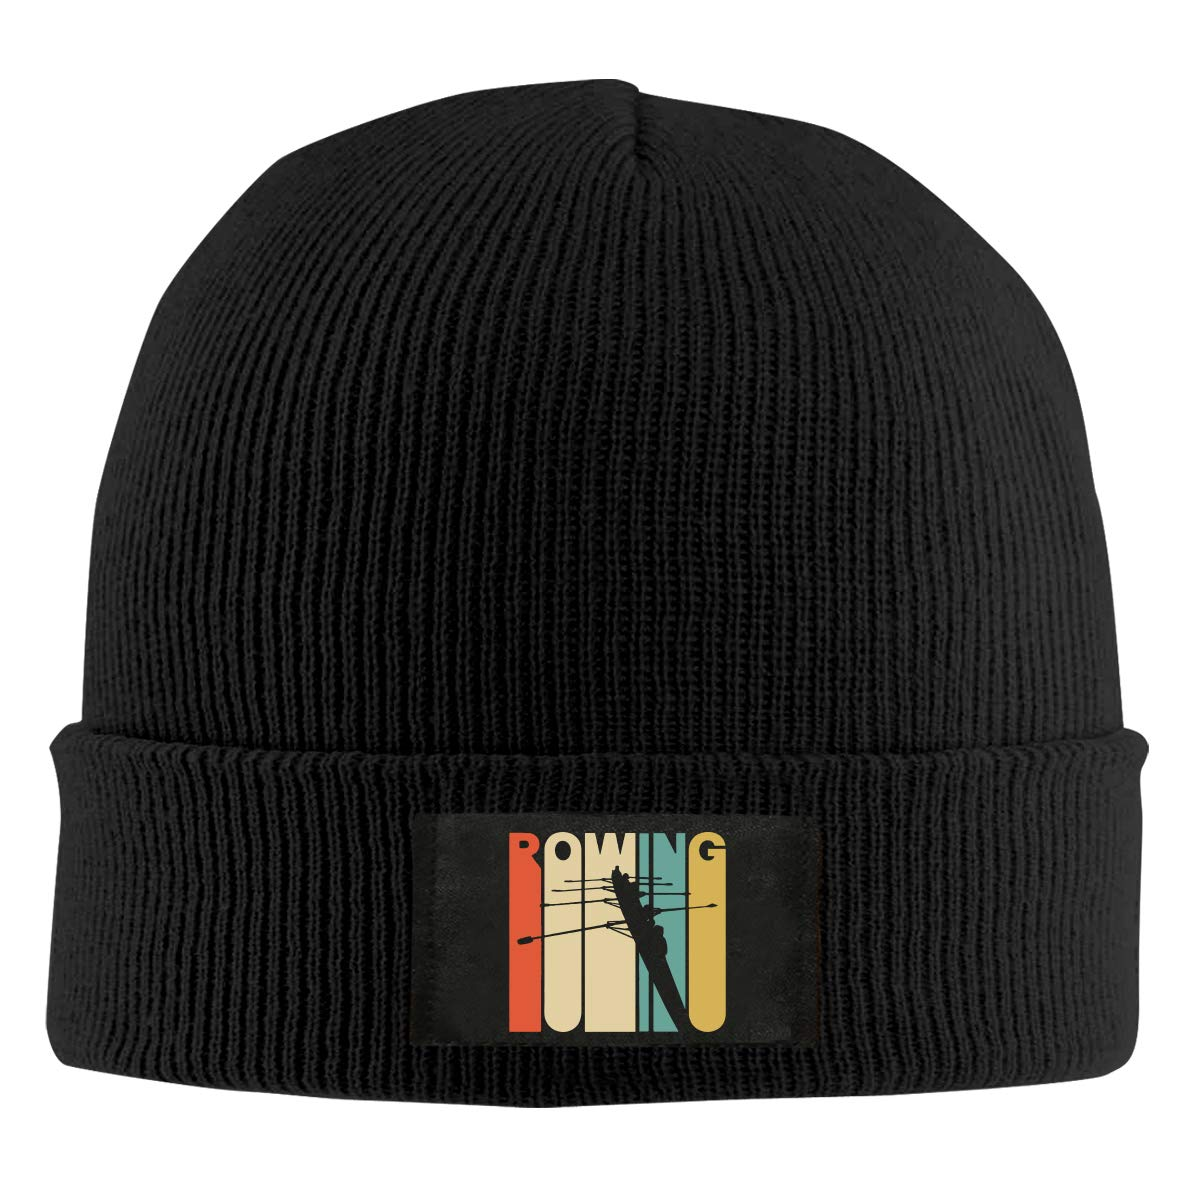 Mens and Womens Vintage Style Rowing Silhouette Knit Cap 100/% Acrylic Trendy Skull Cap